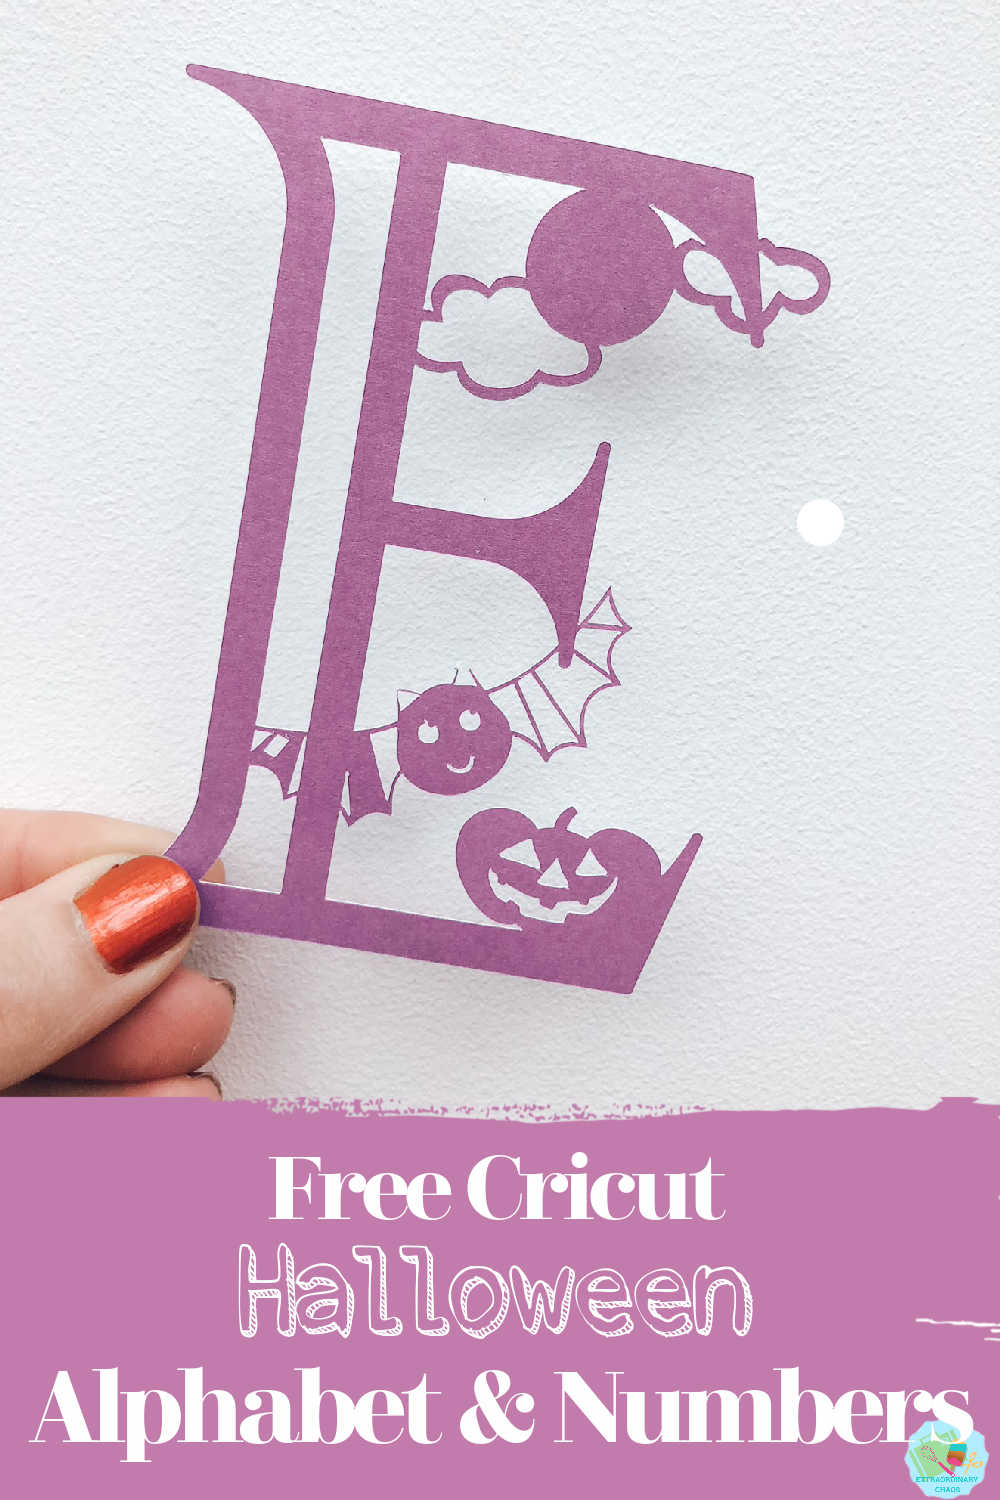 Free Cricut Halloween Alphabet and also numbers for Halloween crafts and parties to make Halloween Decorations